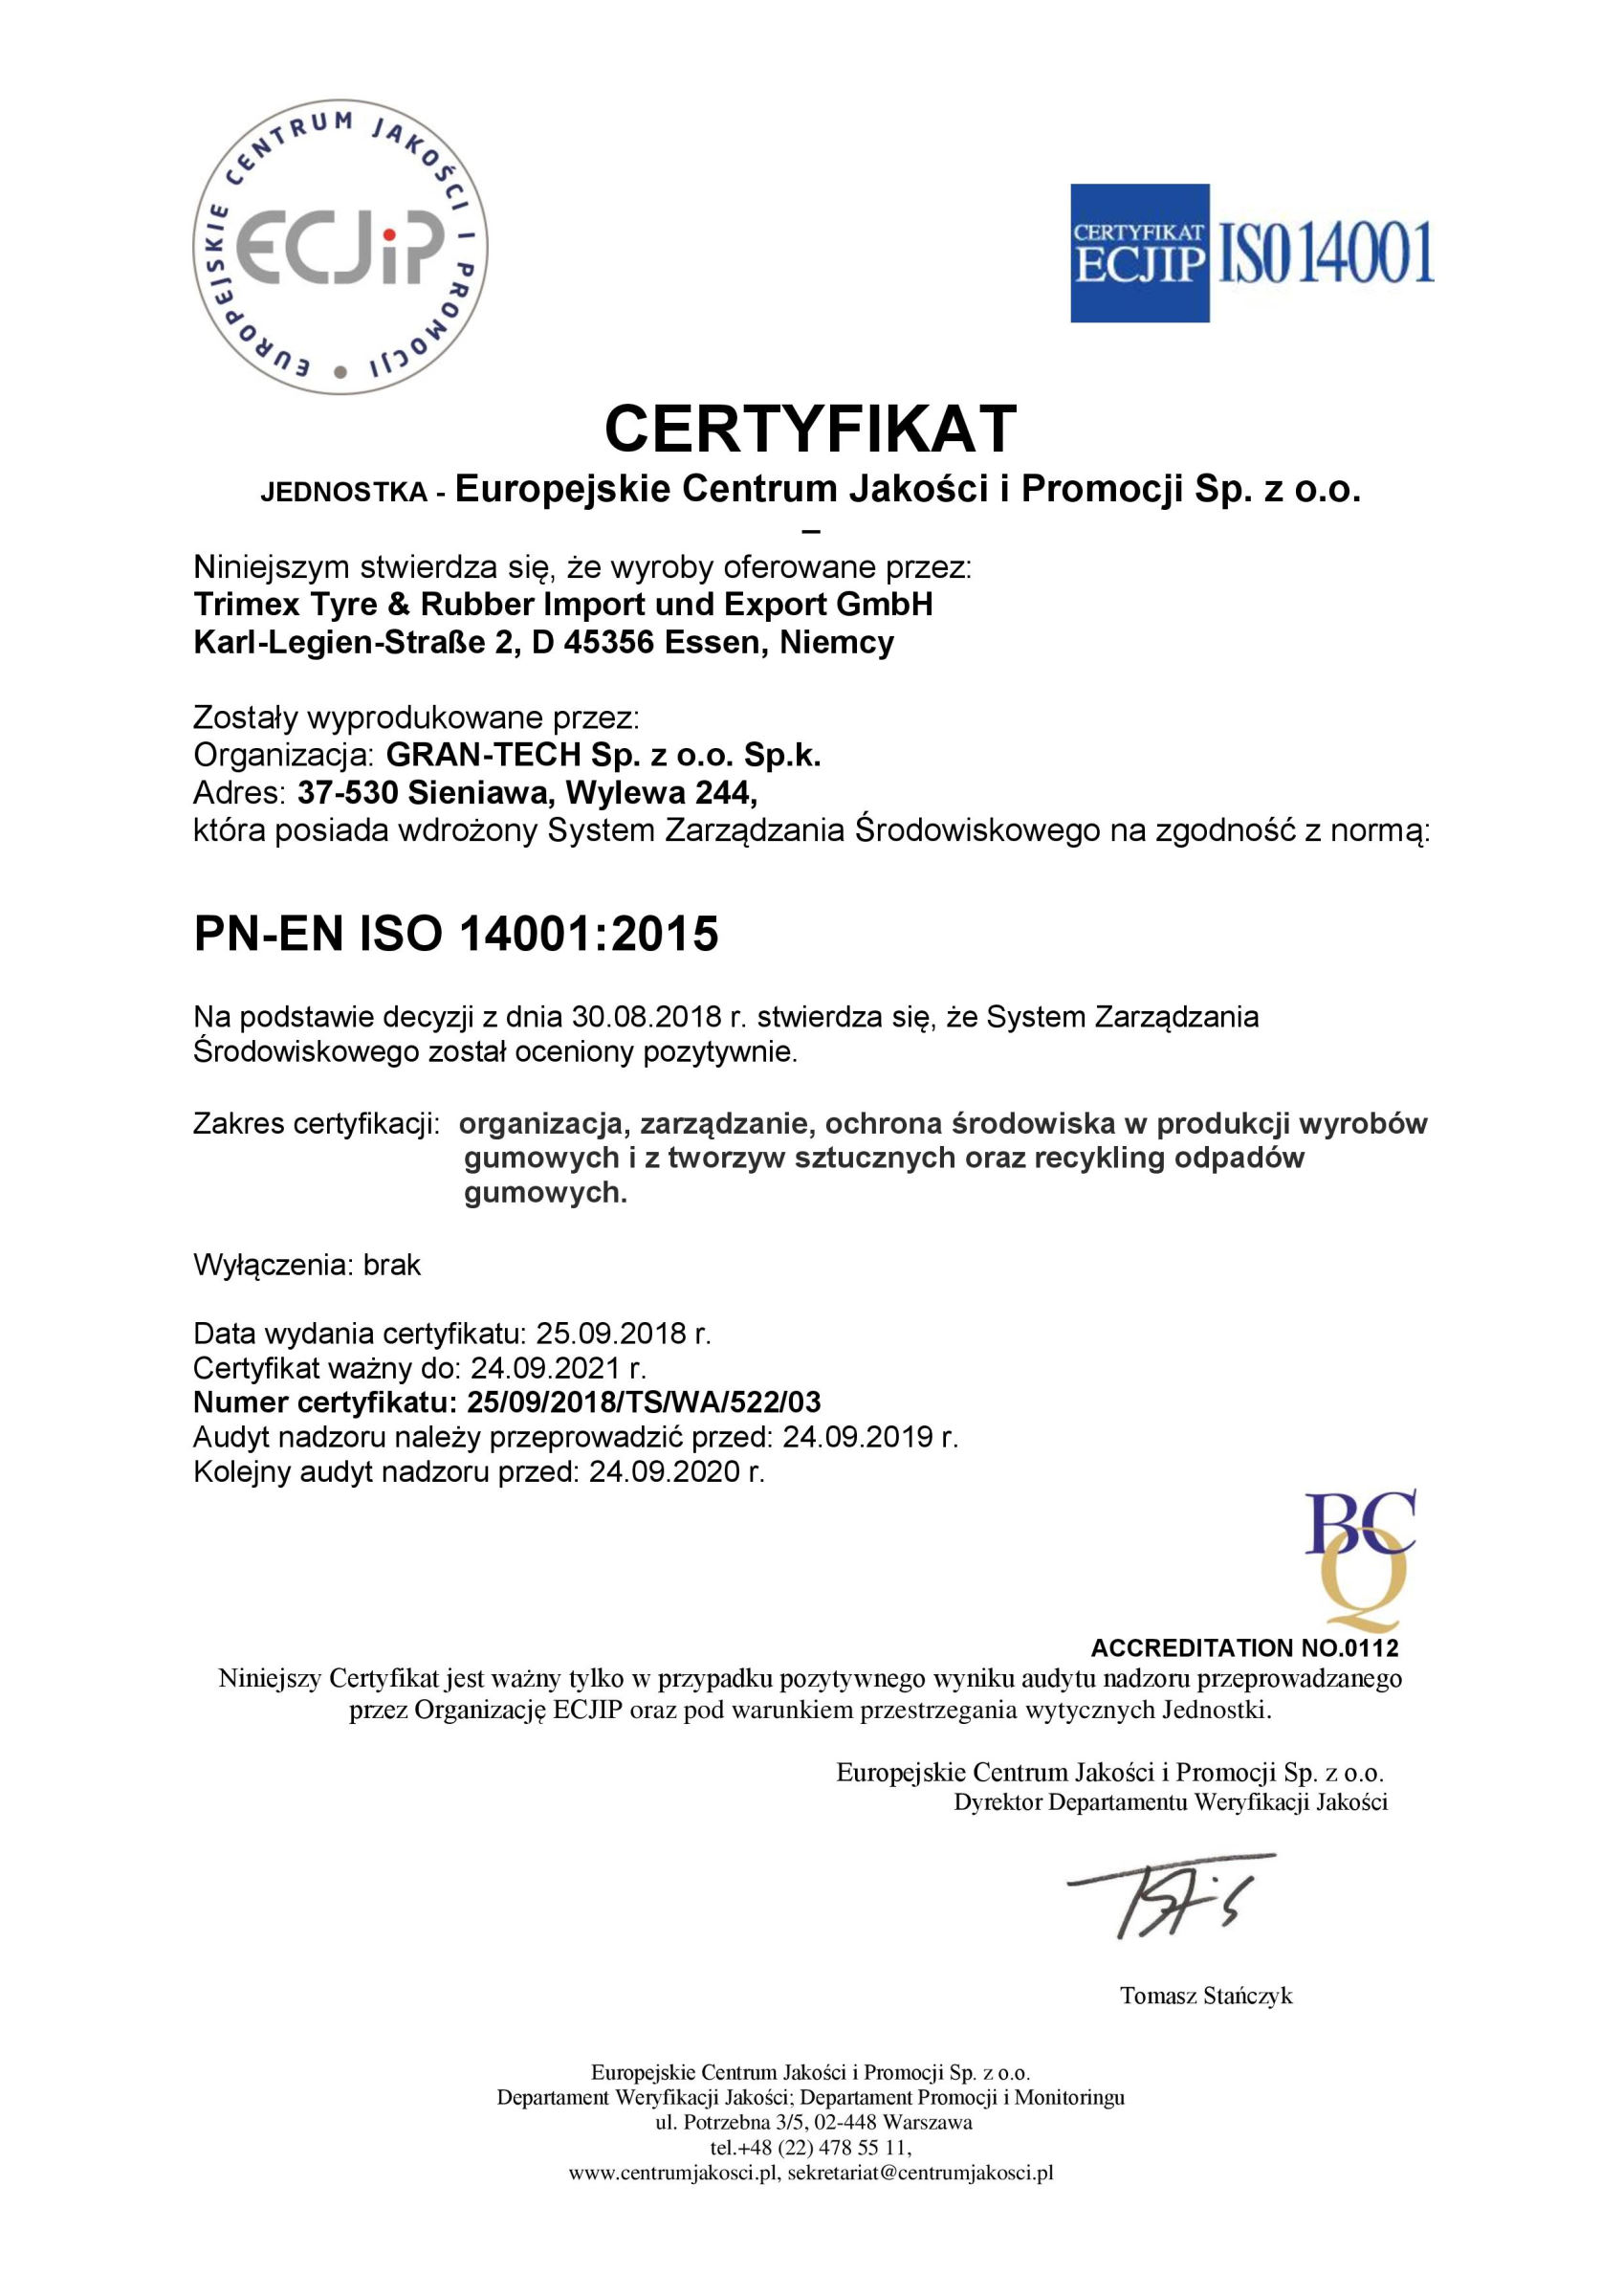 GRAN-TECH - ISO140012015 2018-page-001